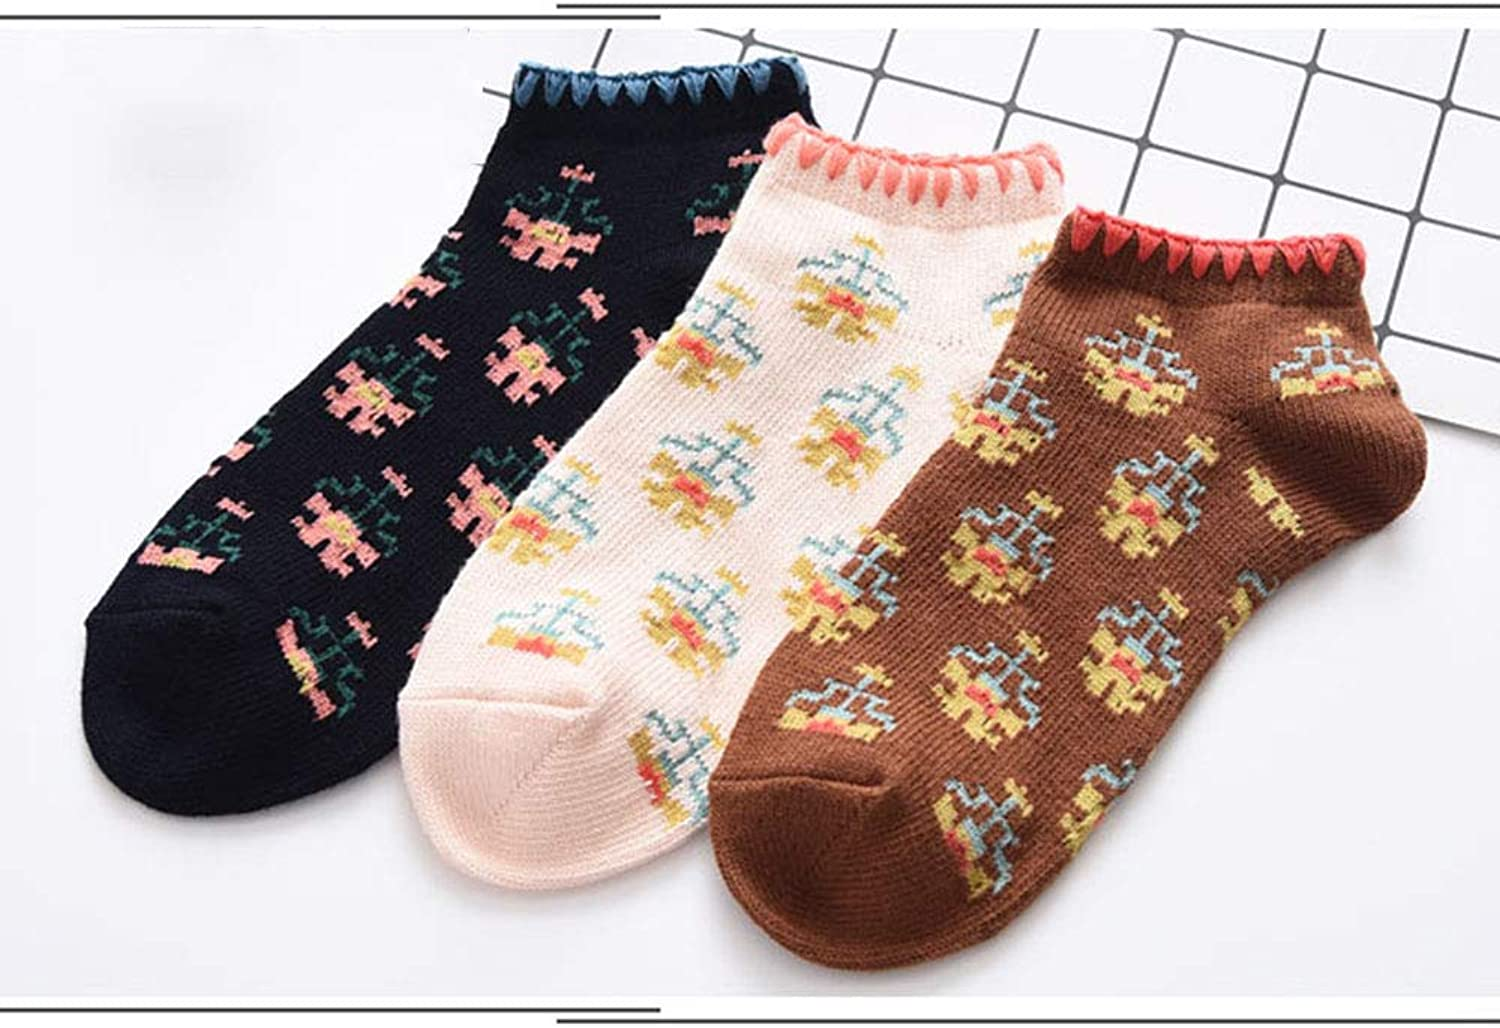 Socks 3 Pairs of Socks Fashion Casual Cotton Socks Knit Retro Nostalgic Woven Flower Socks